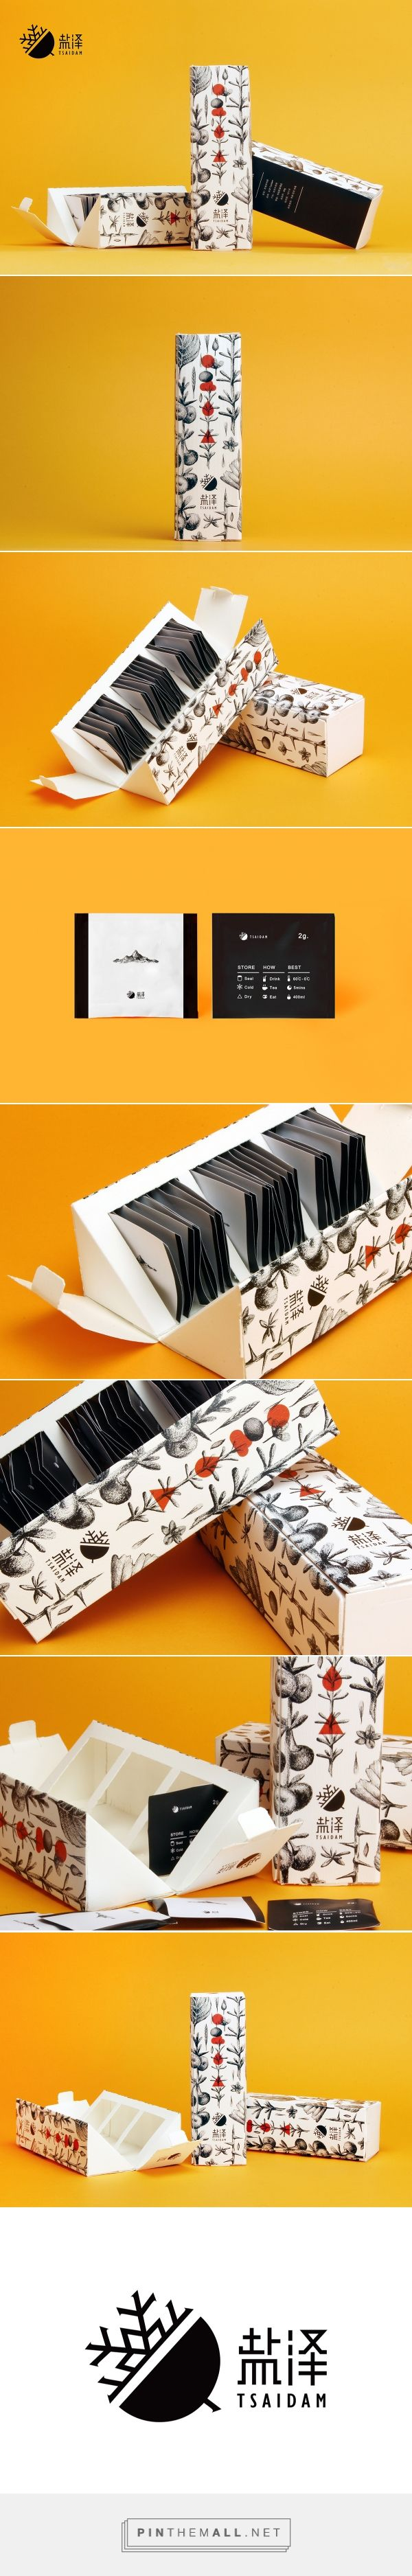 Tsaidam packaging design for a kind of special Chinese dry fruit by Yu-Heng Lin